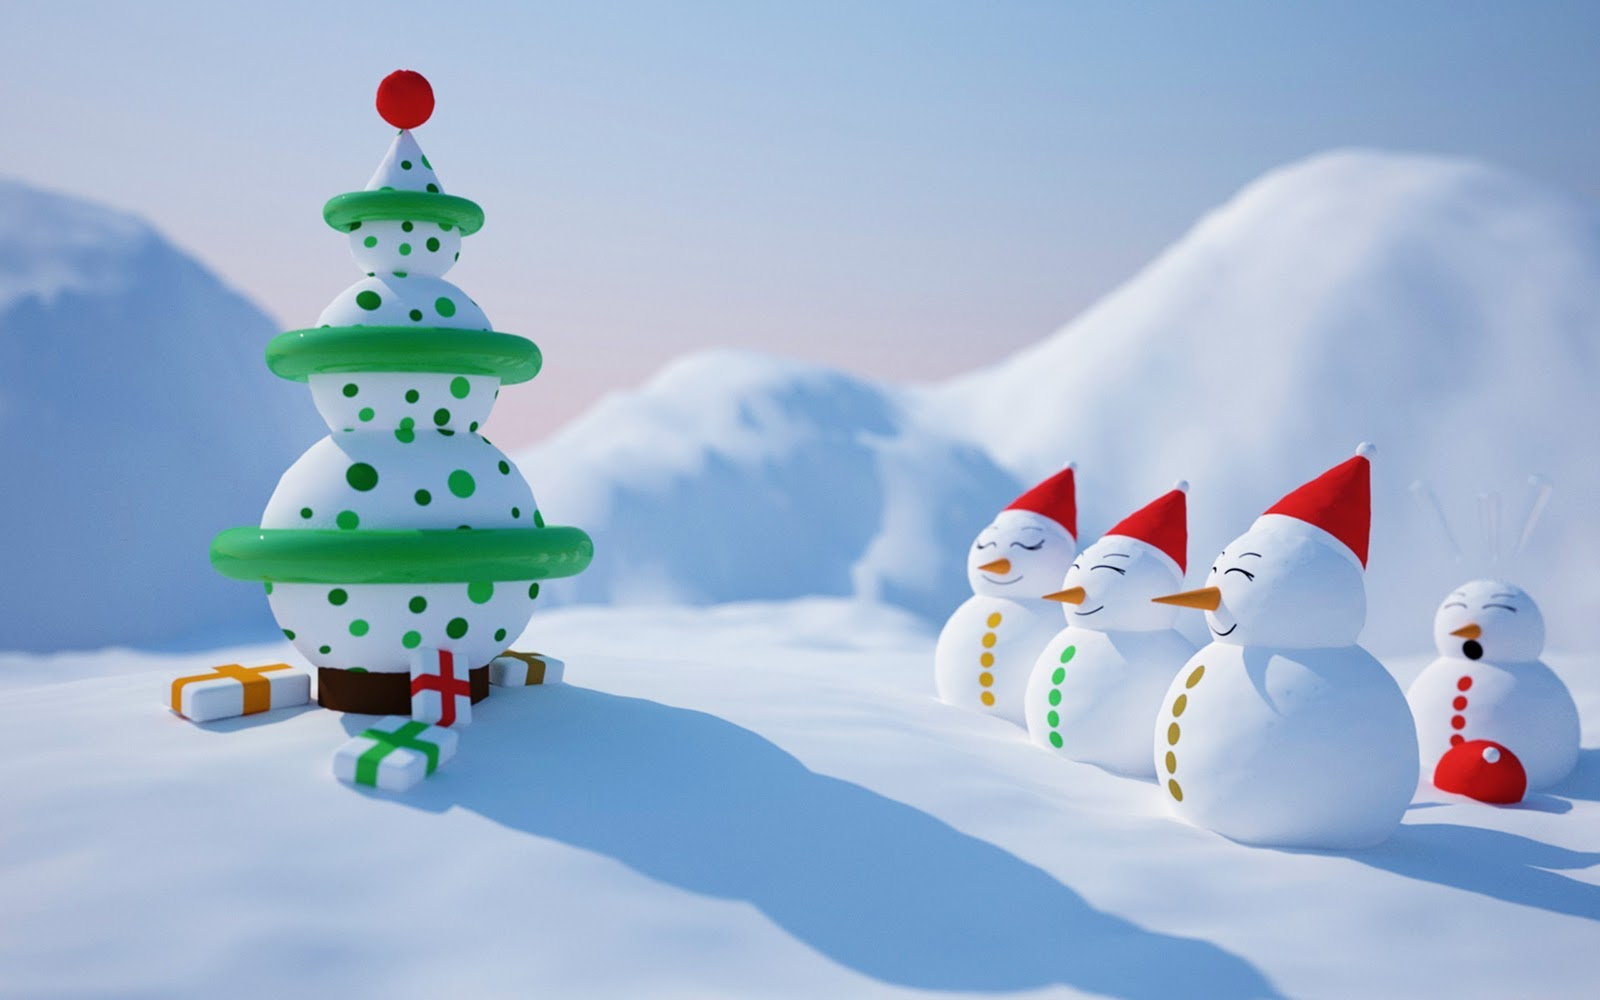 LATEST WALLPAPER Animated Christmas Desktop Backgrounds 1600x1000